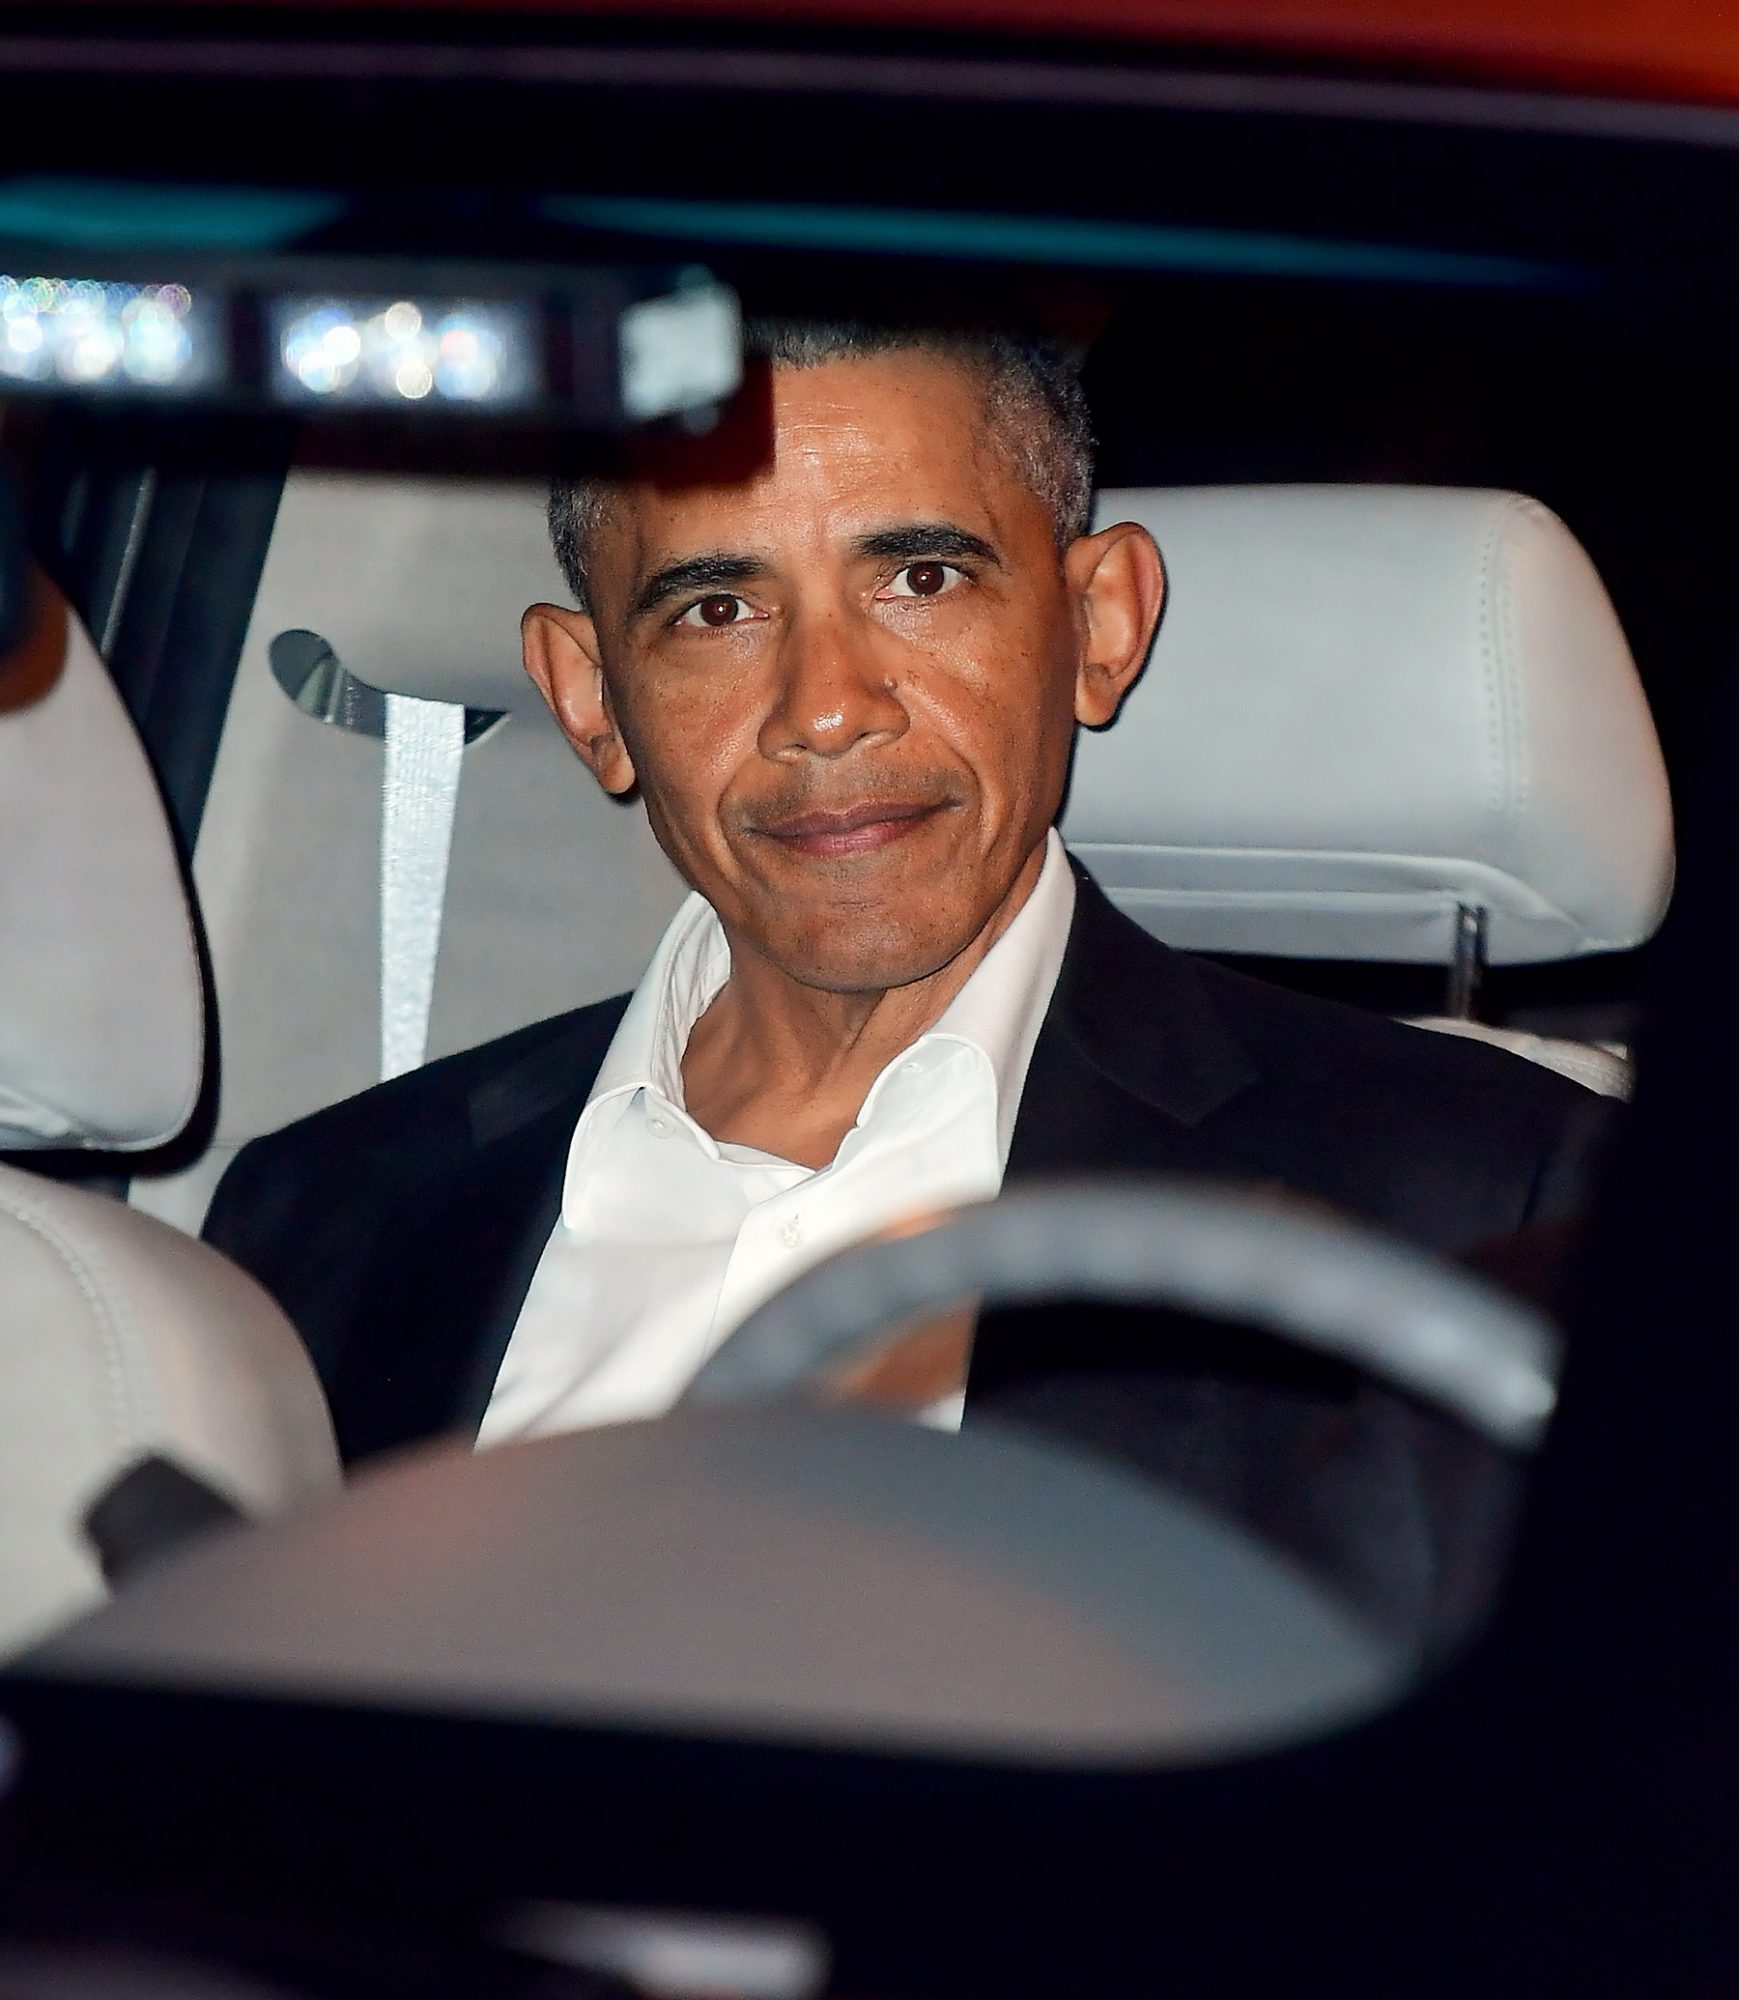 EXCLUSIVE: A Happy looking President Barack Obama Arrives at NYC Temple for Speaking Engagement